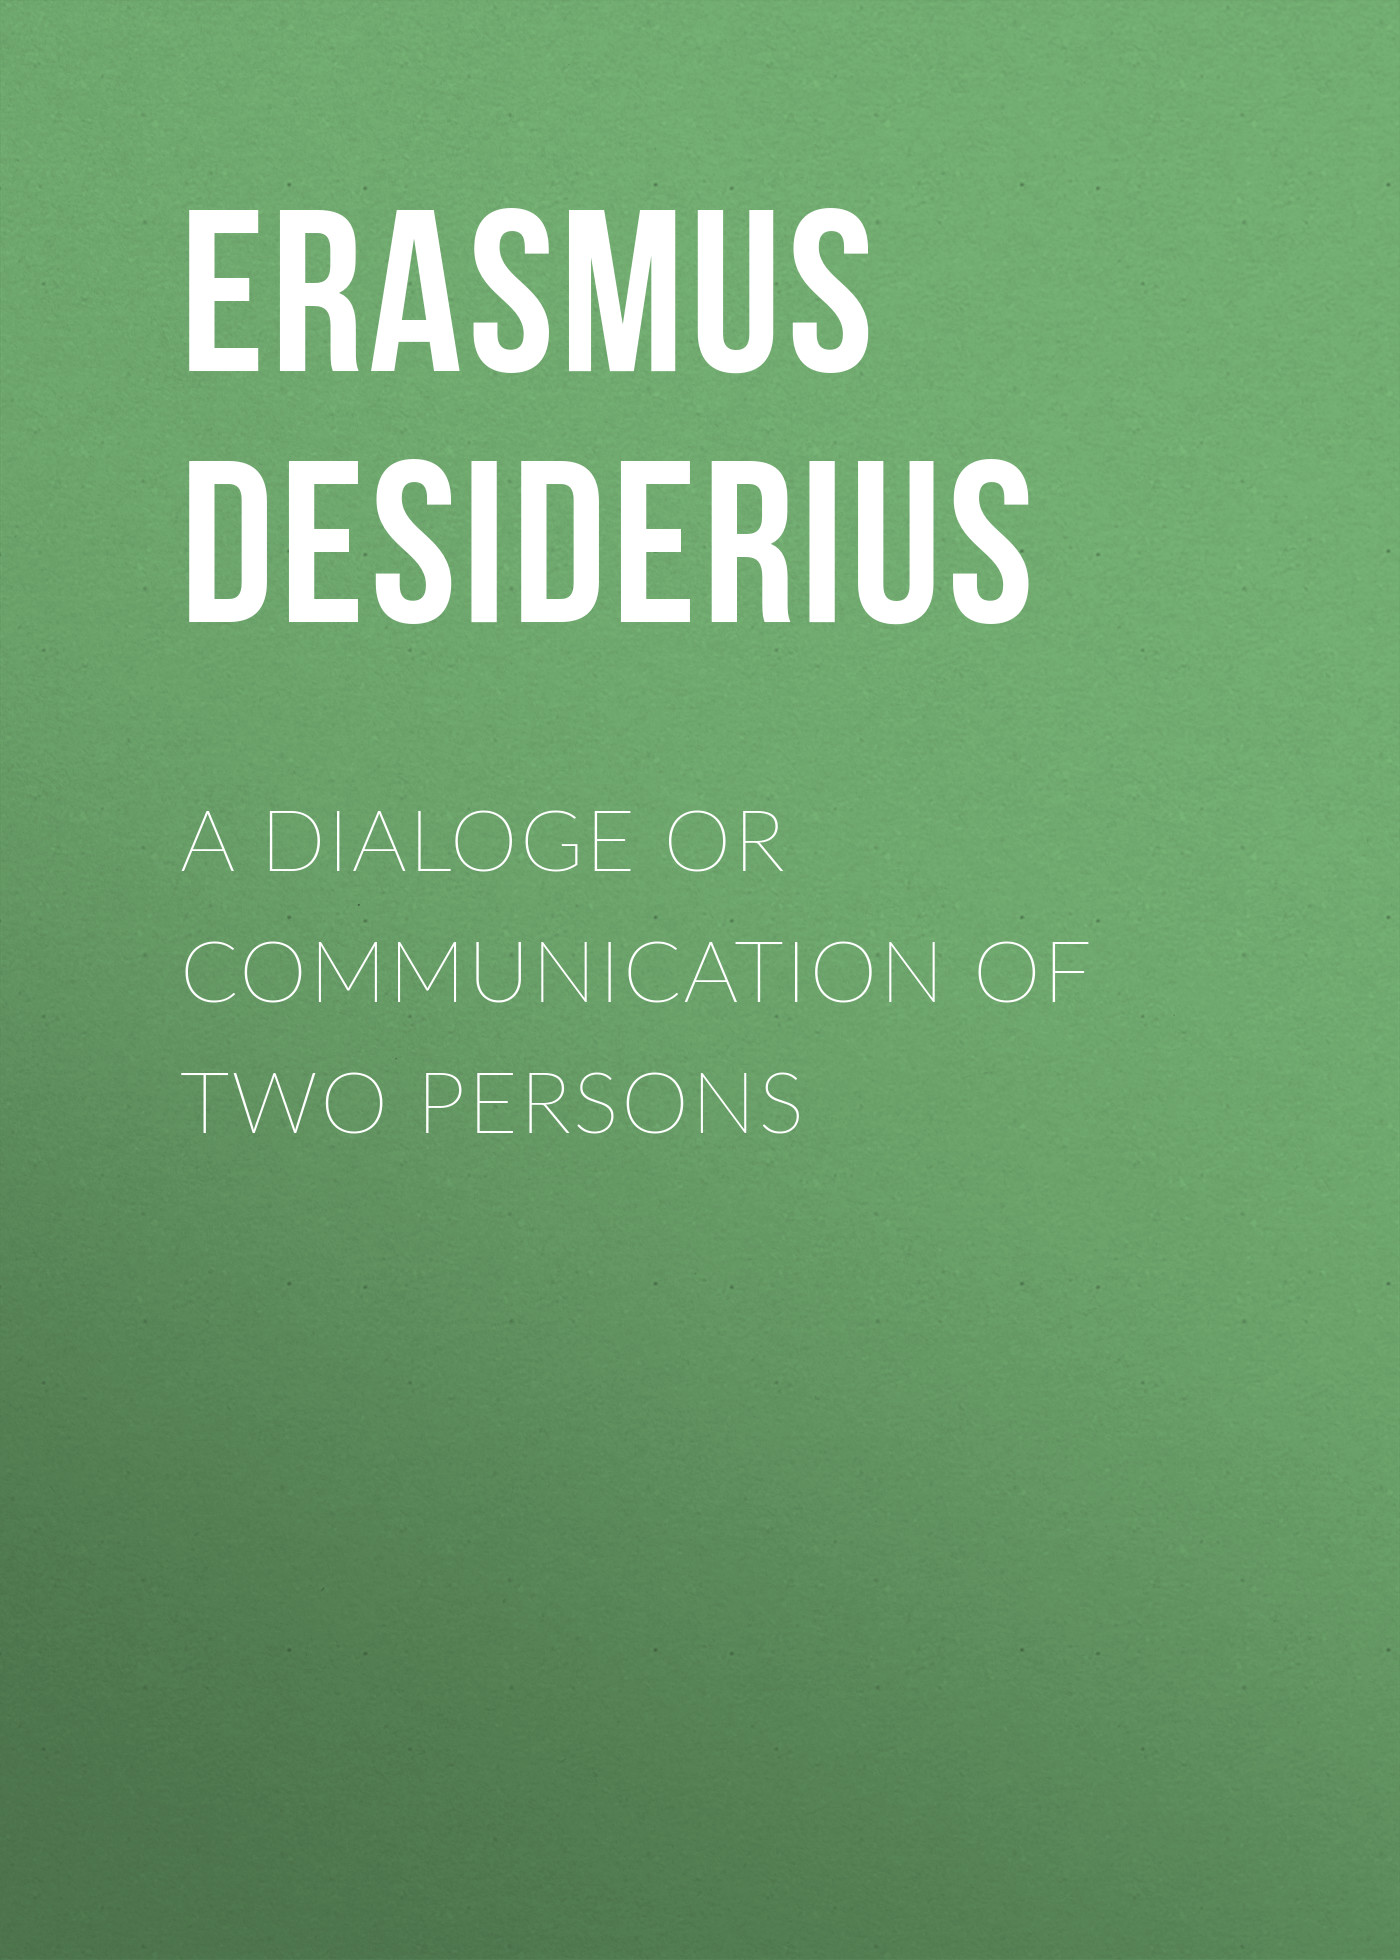 Erasmus Desiderius A dialoge or communication of two persons mini gsm gps tracker for kids elderly personal sos button track with two way communication free platform app alarm